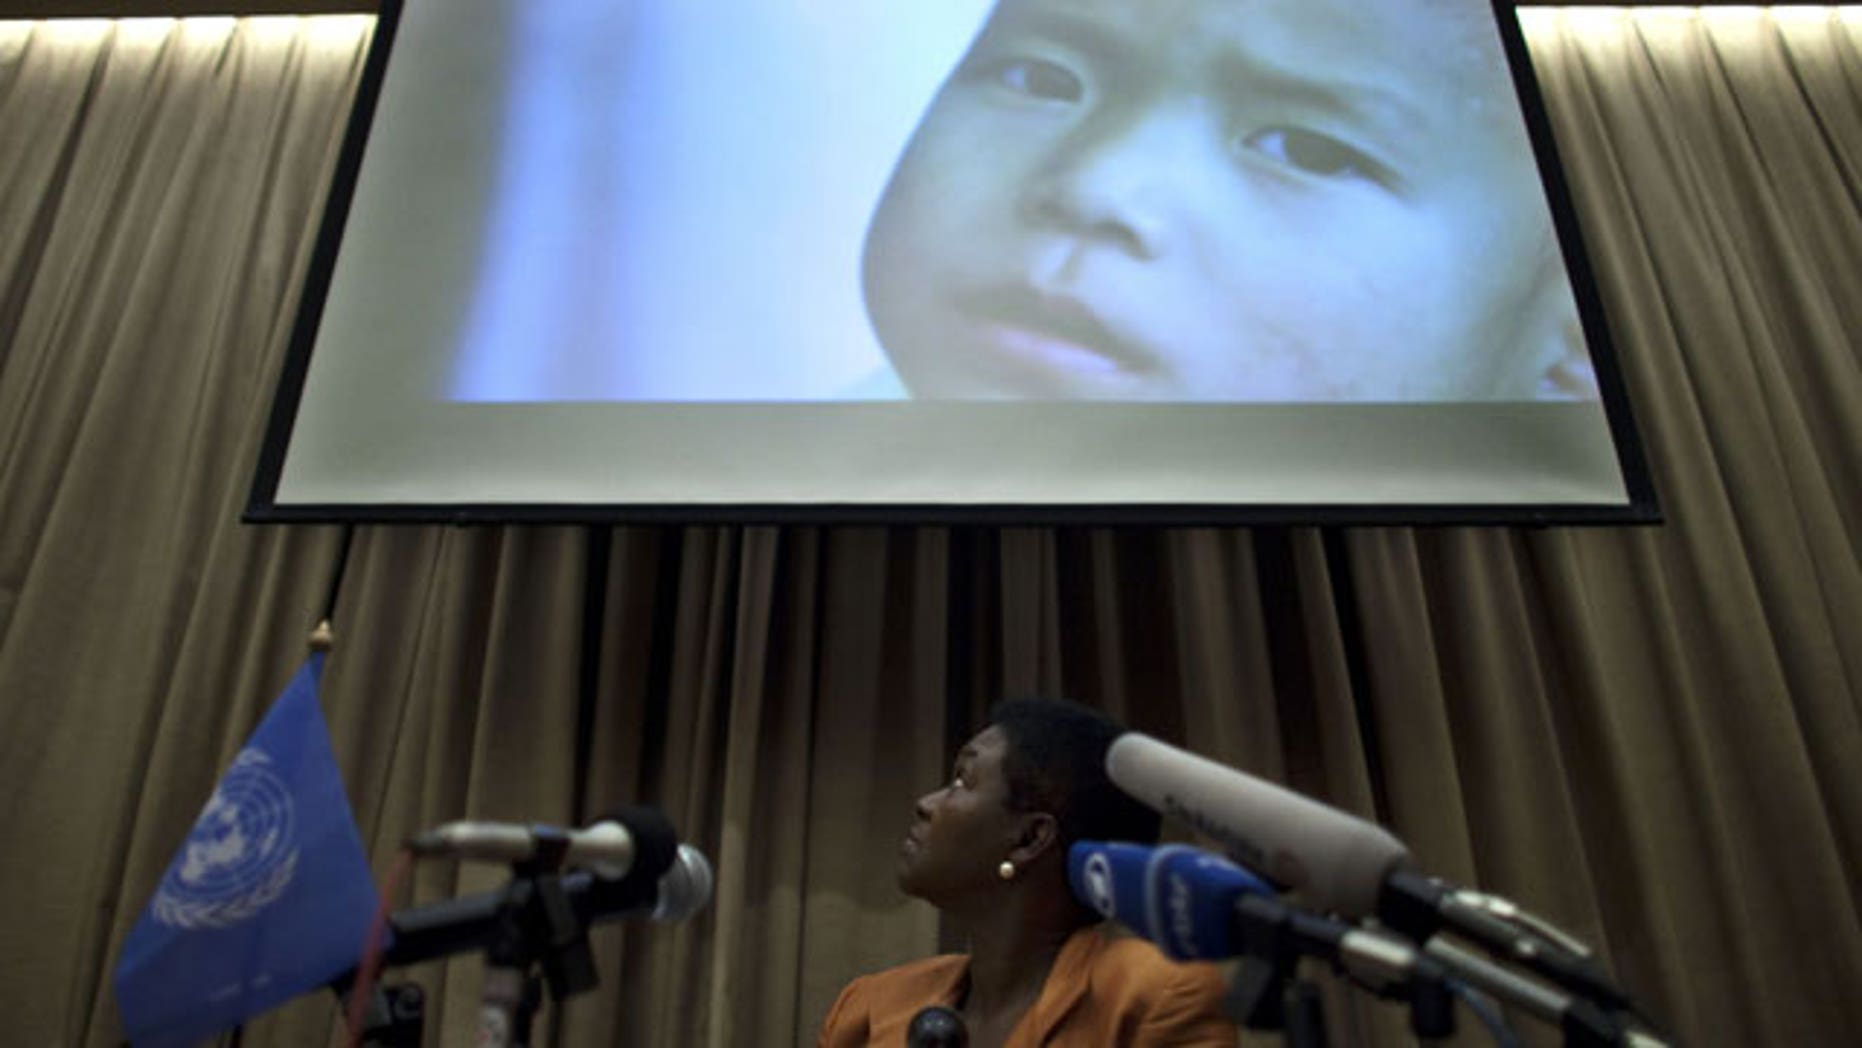 Oct. 21, 2011: Valerie Amos, U.N. undersecretary-general for Humanitarian Affairs and Emergency Relief Coordinator, looks at an image showing a North Korean child during a press conference in Beijing, China.